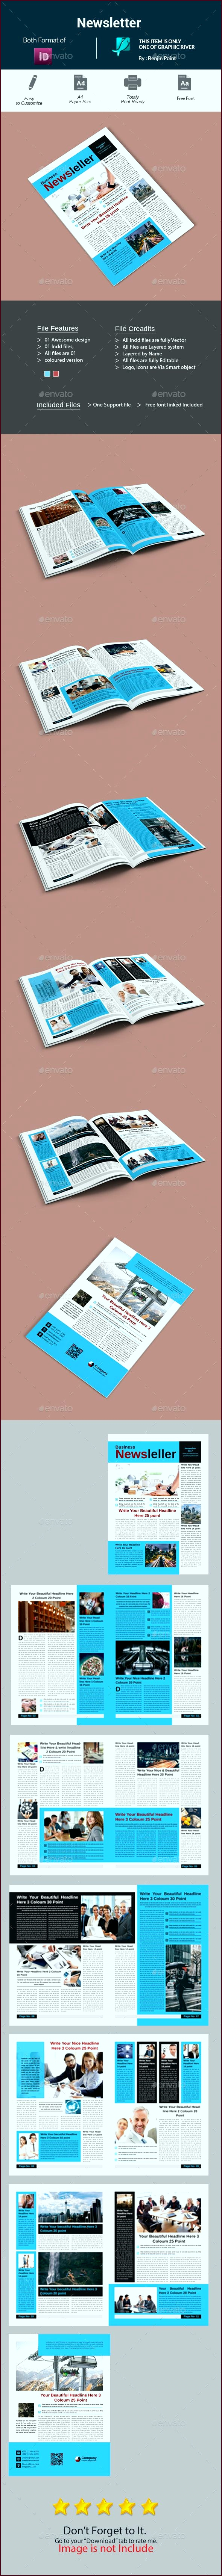 Newsletter Newsletters Print Templates atopo